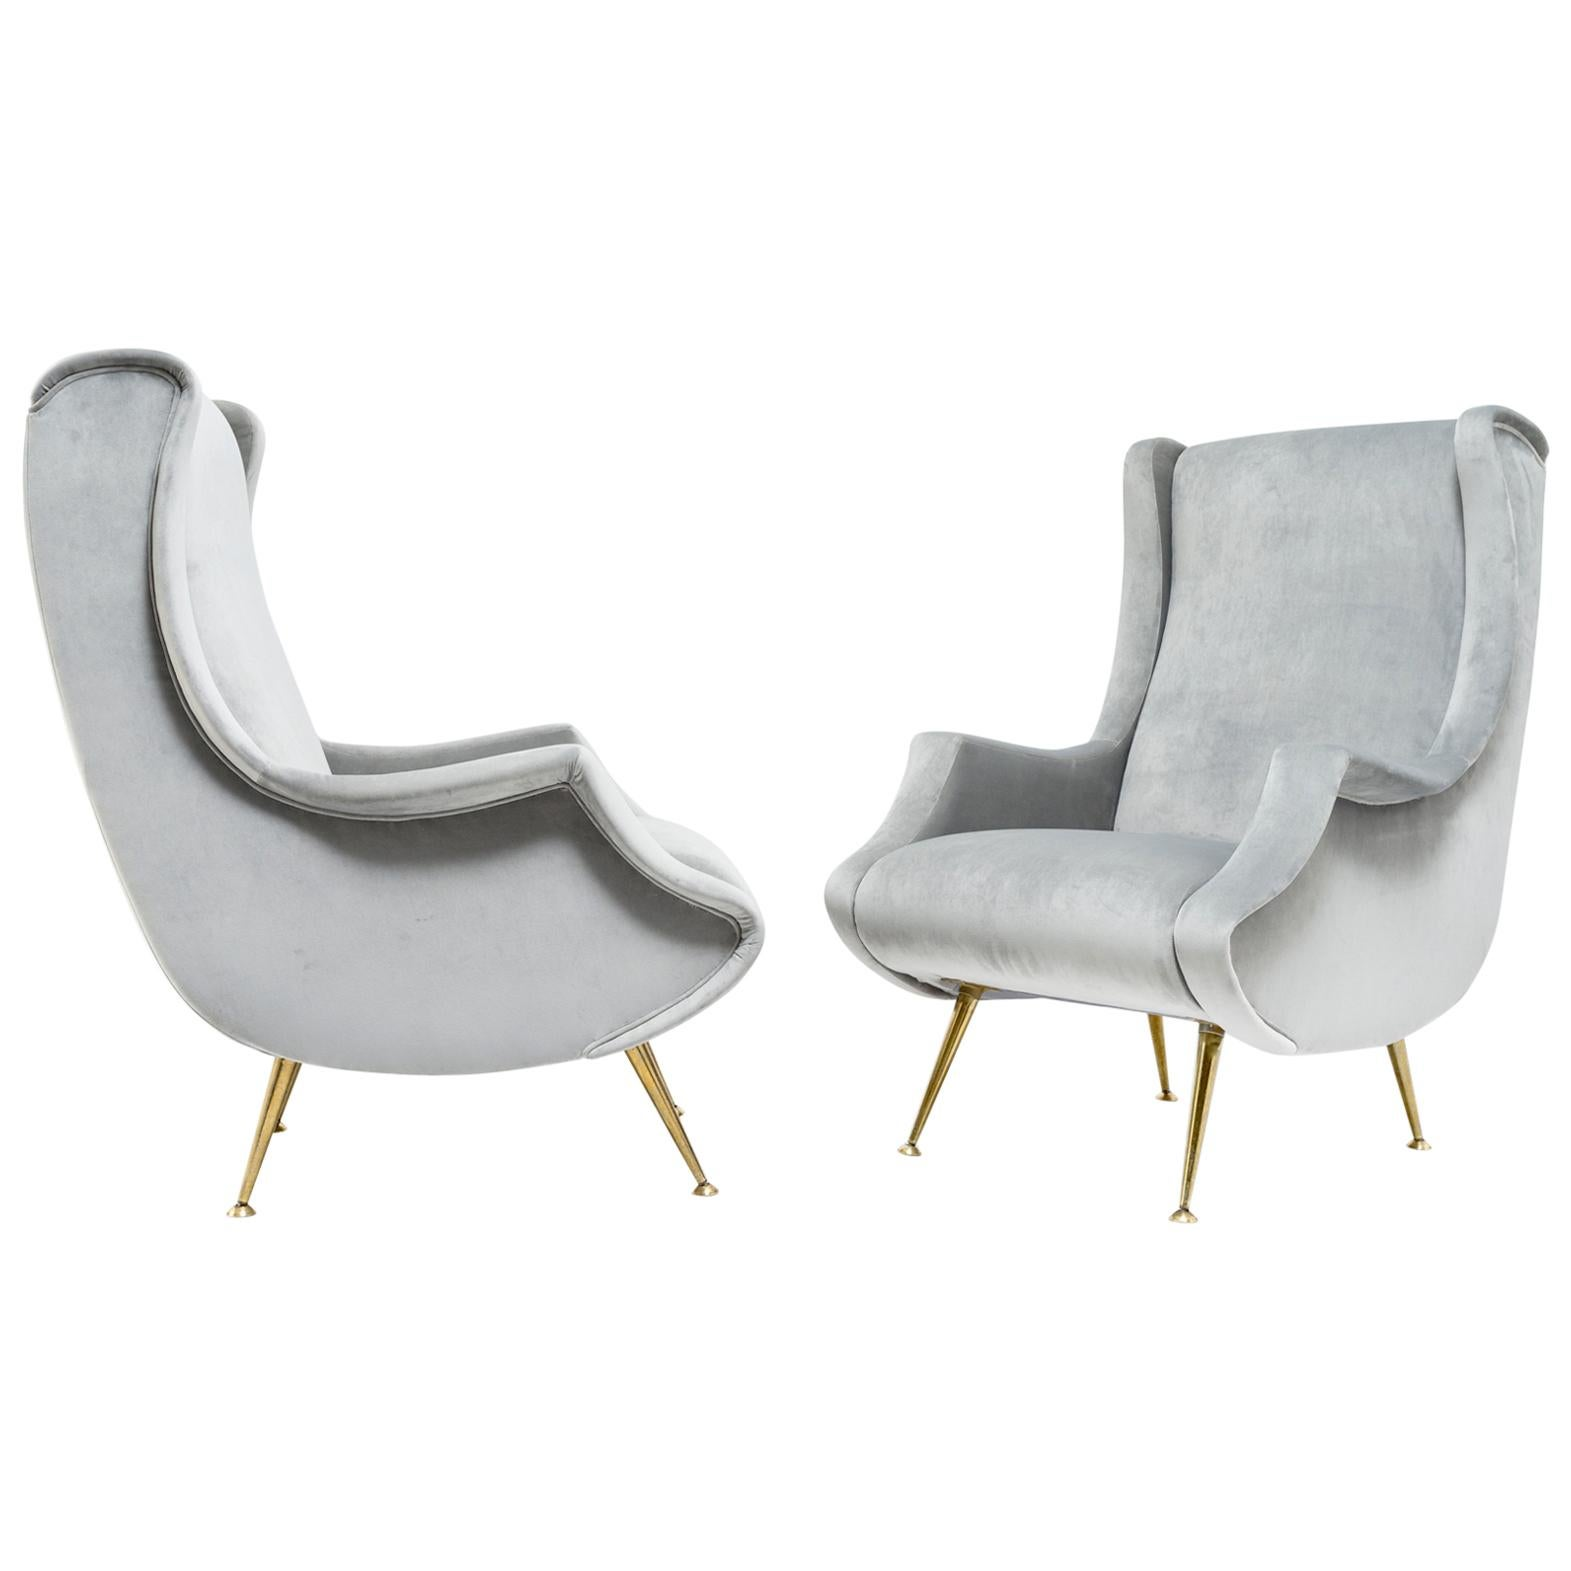 Pair of armchairs by ISA Bergamo - Italy, 1950s